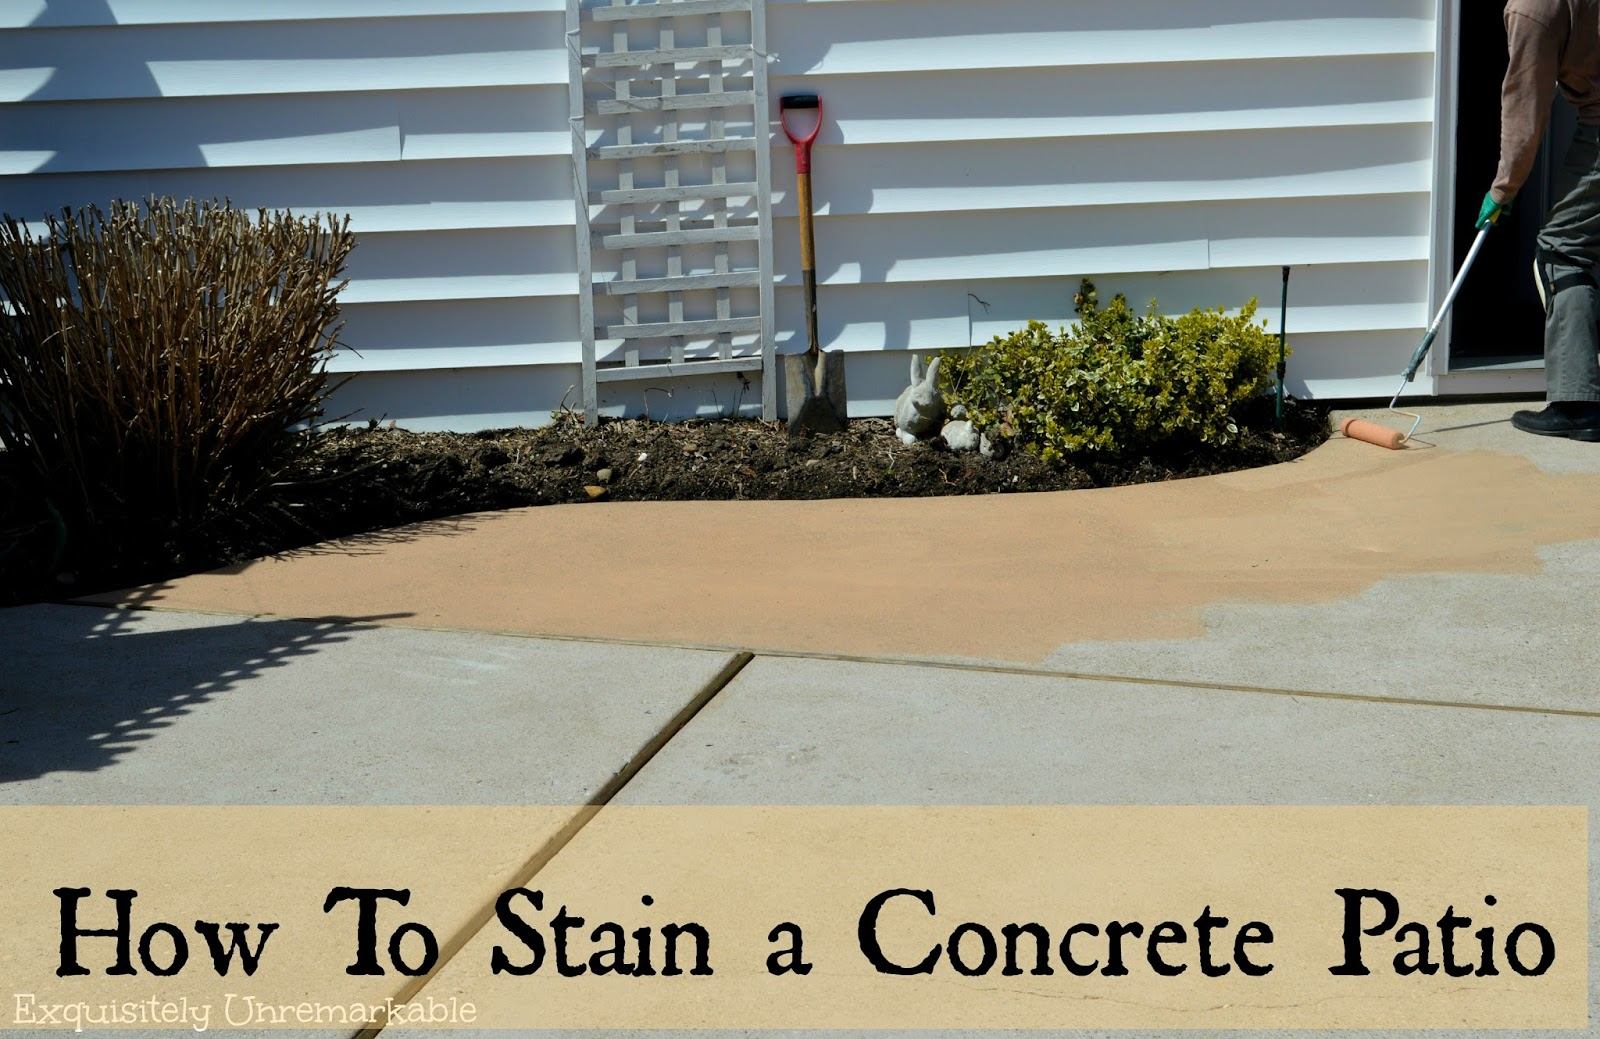 Superbe How To Stain Concrete